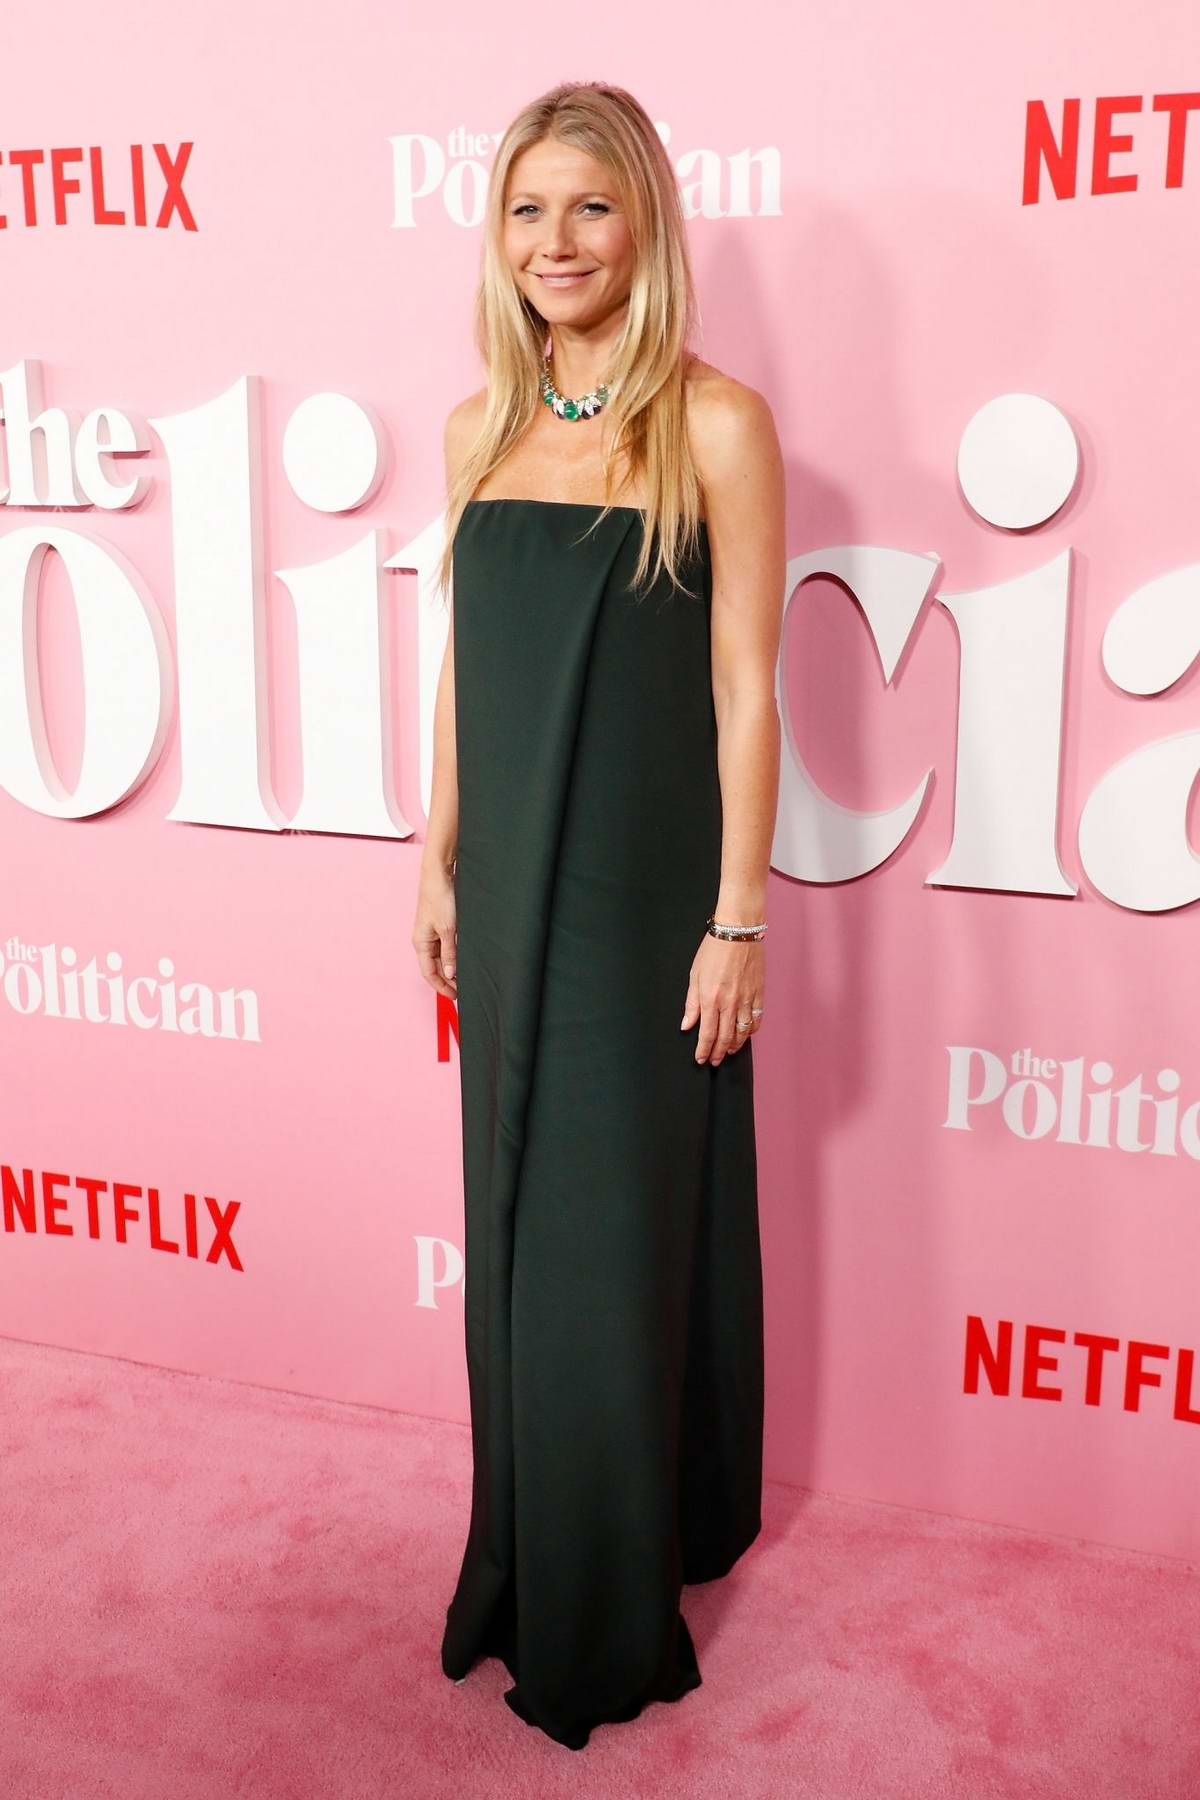 Gwyneth Paltrow attends 'The Politician' Premiere at the DGA Theatre in New York City